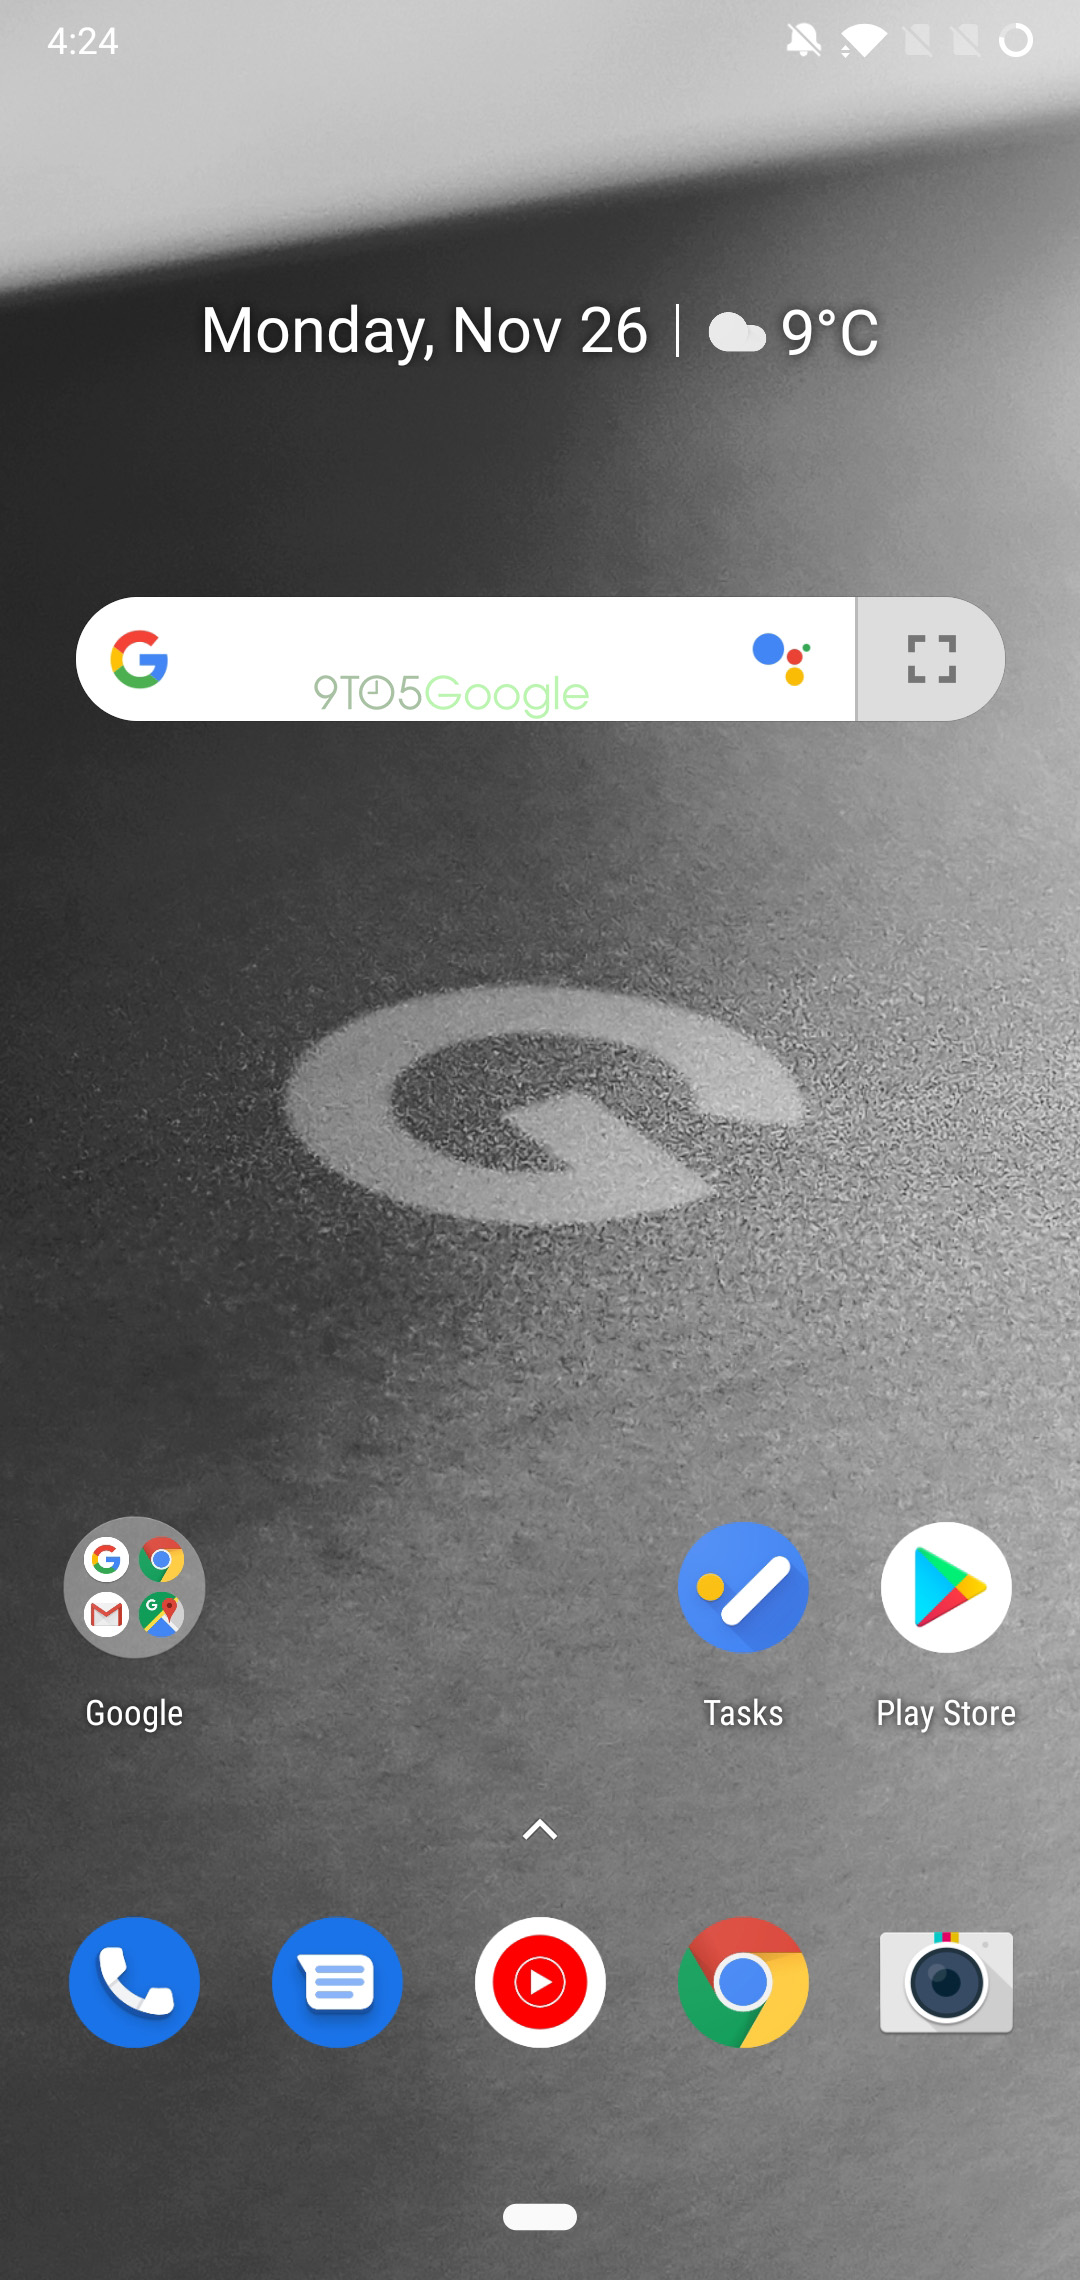 Google app 8 59 preps expanding Search widget, wider Continued